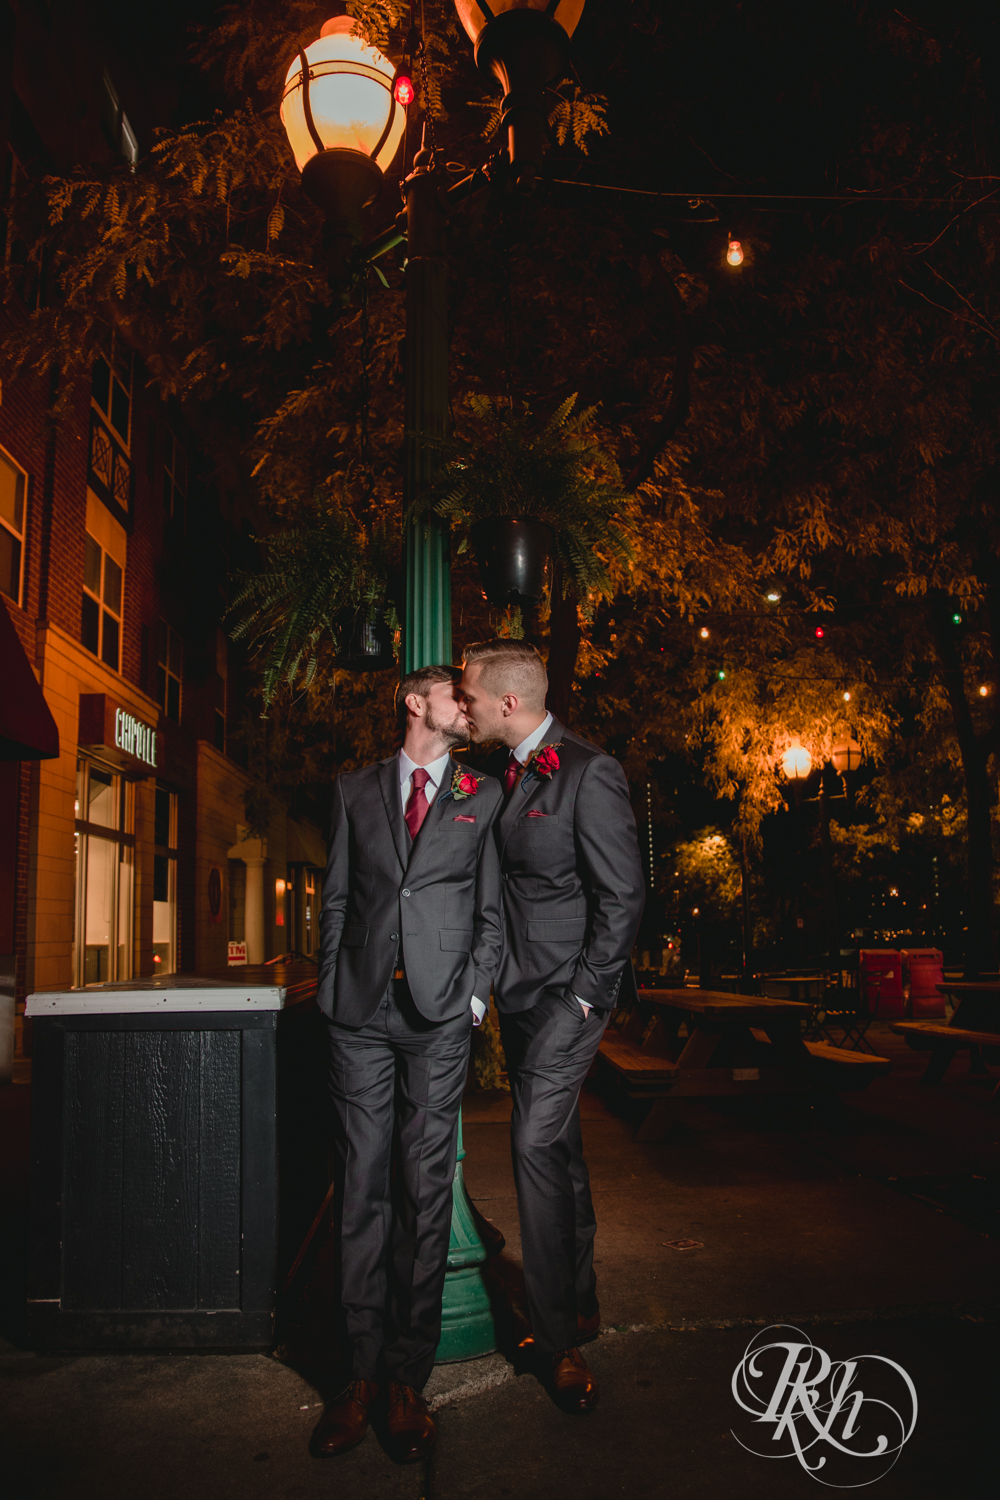 Michael & Darren - Minnesota LGBT Wedding Photography - Courtyard by Marriott Minneapolis - RKH Images - Blog (67 of 67).jpg